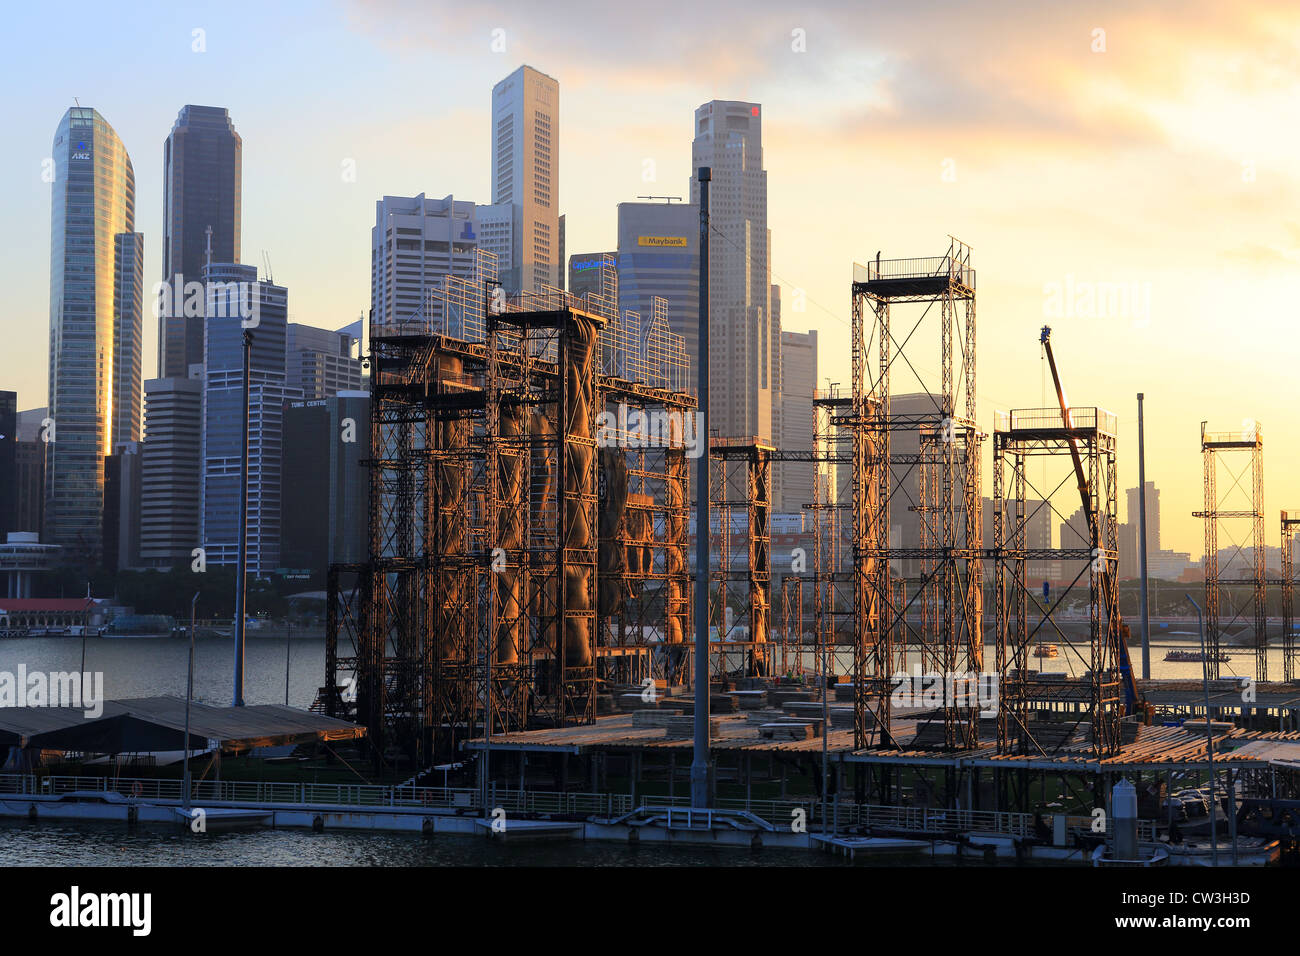 Grandstand scaffolding deconstruction in Marina Bay, Singapore. - Stock Image